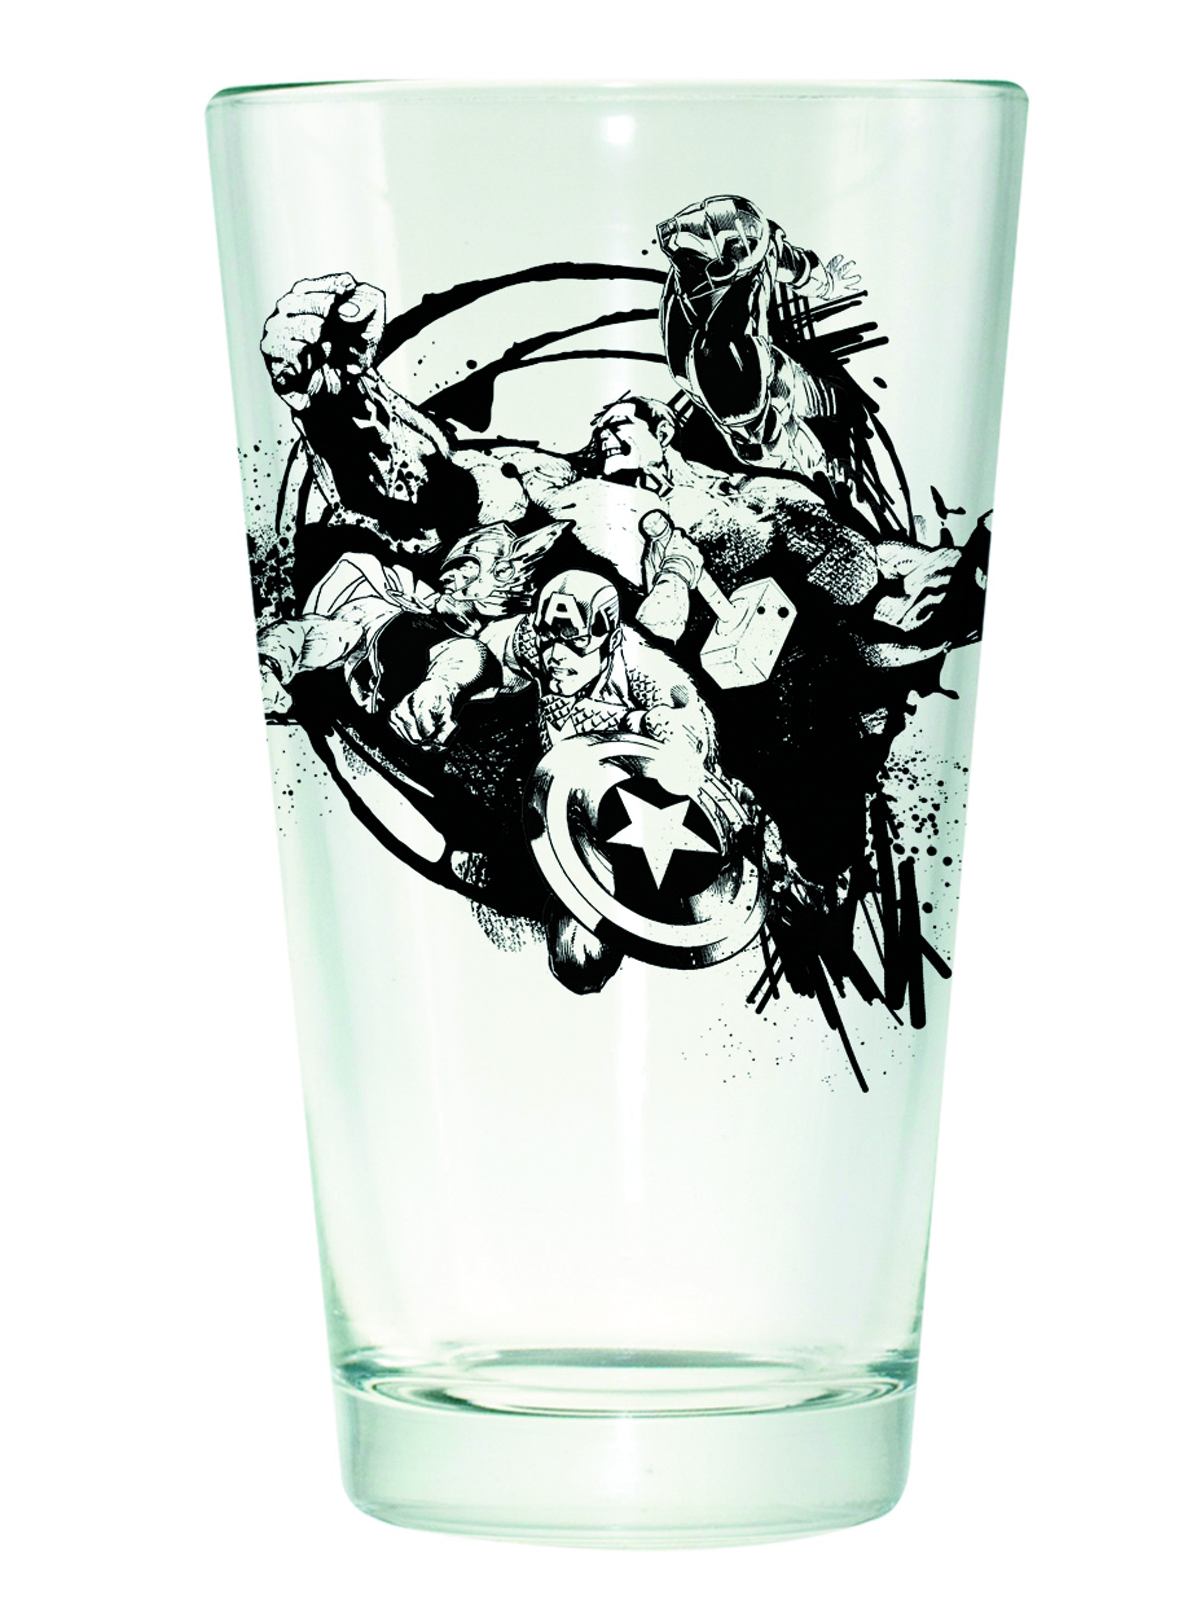 AVENGERS CIRCLE PINT GLASS